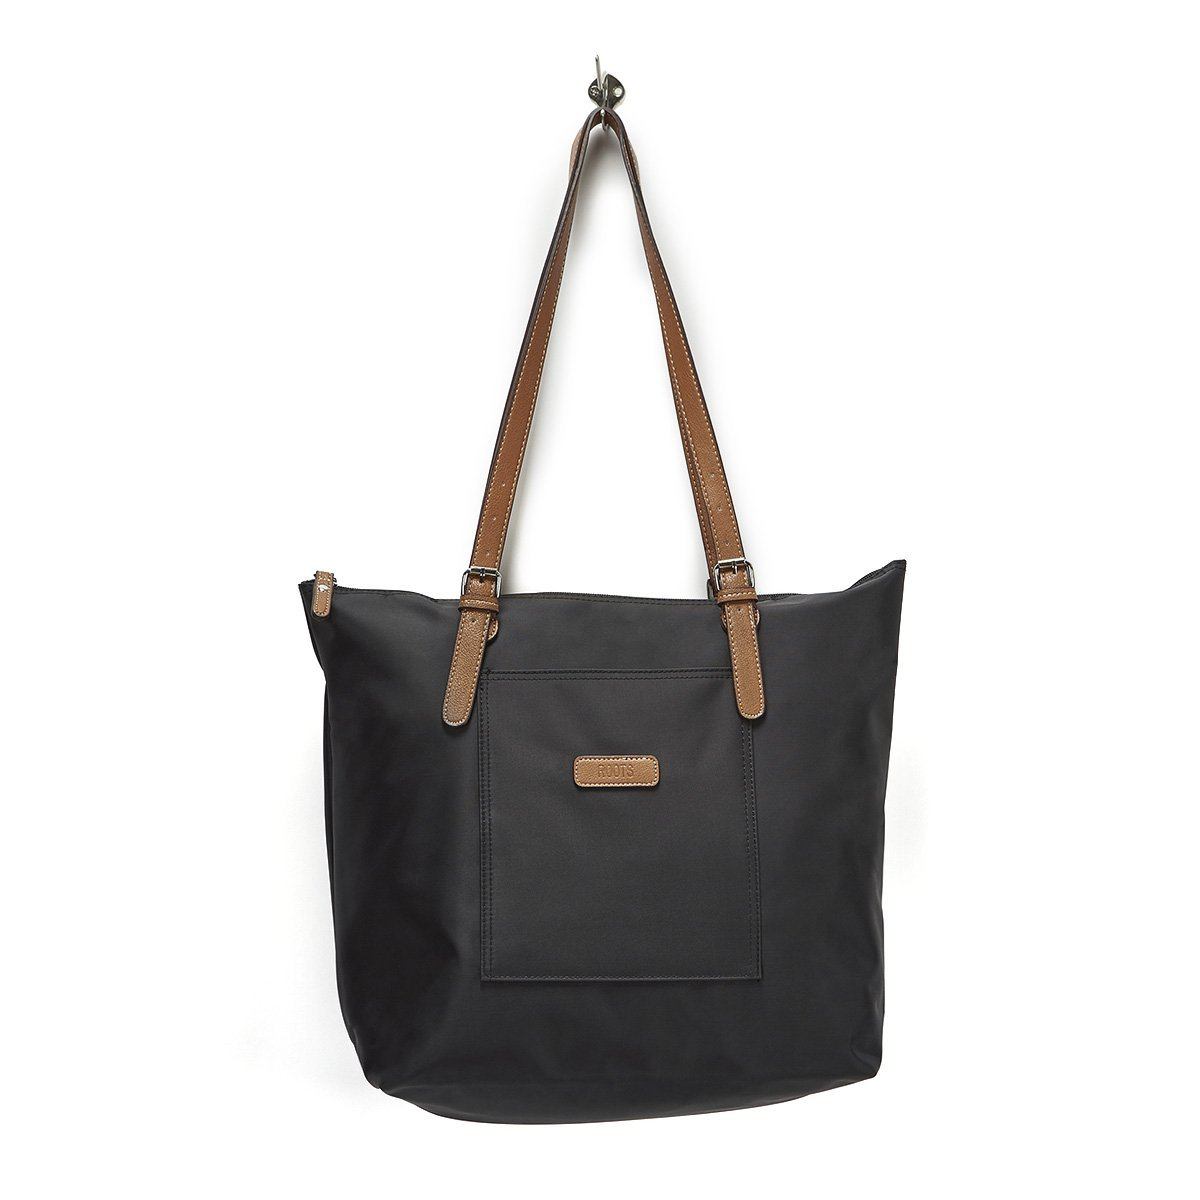 dce439ed855 Roots73 Women's 2 in 1 Tote With Crossbody Bag Black: Amazon.ca ...